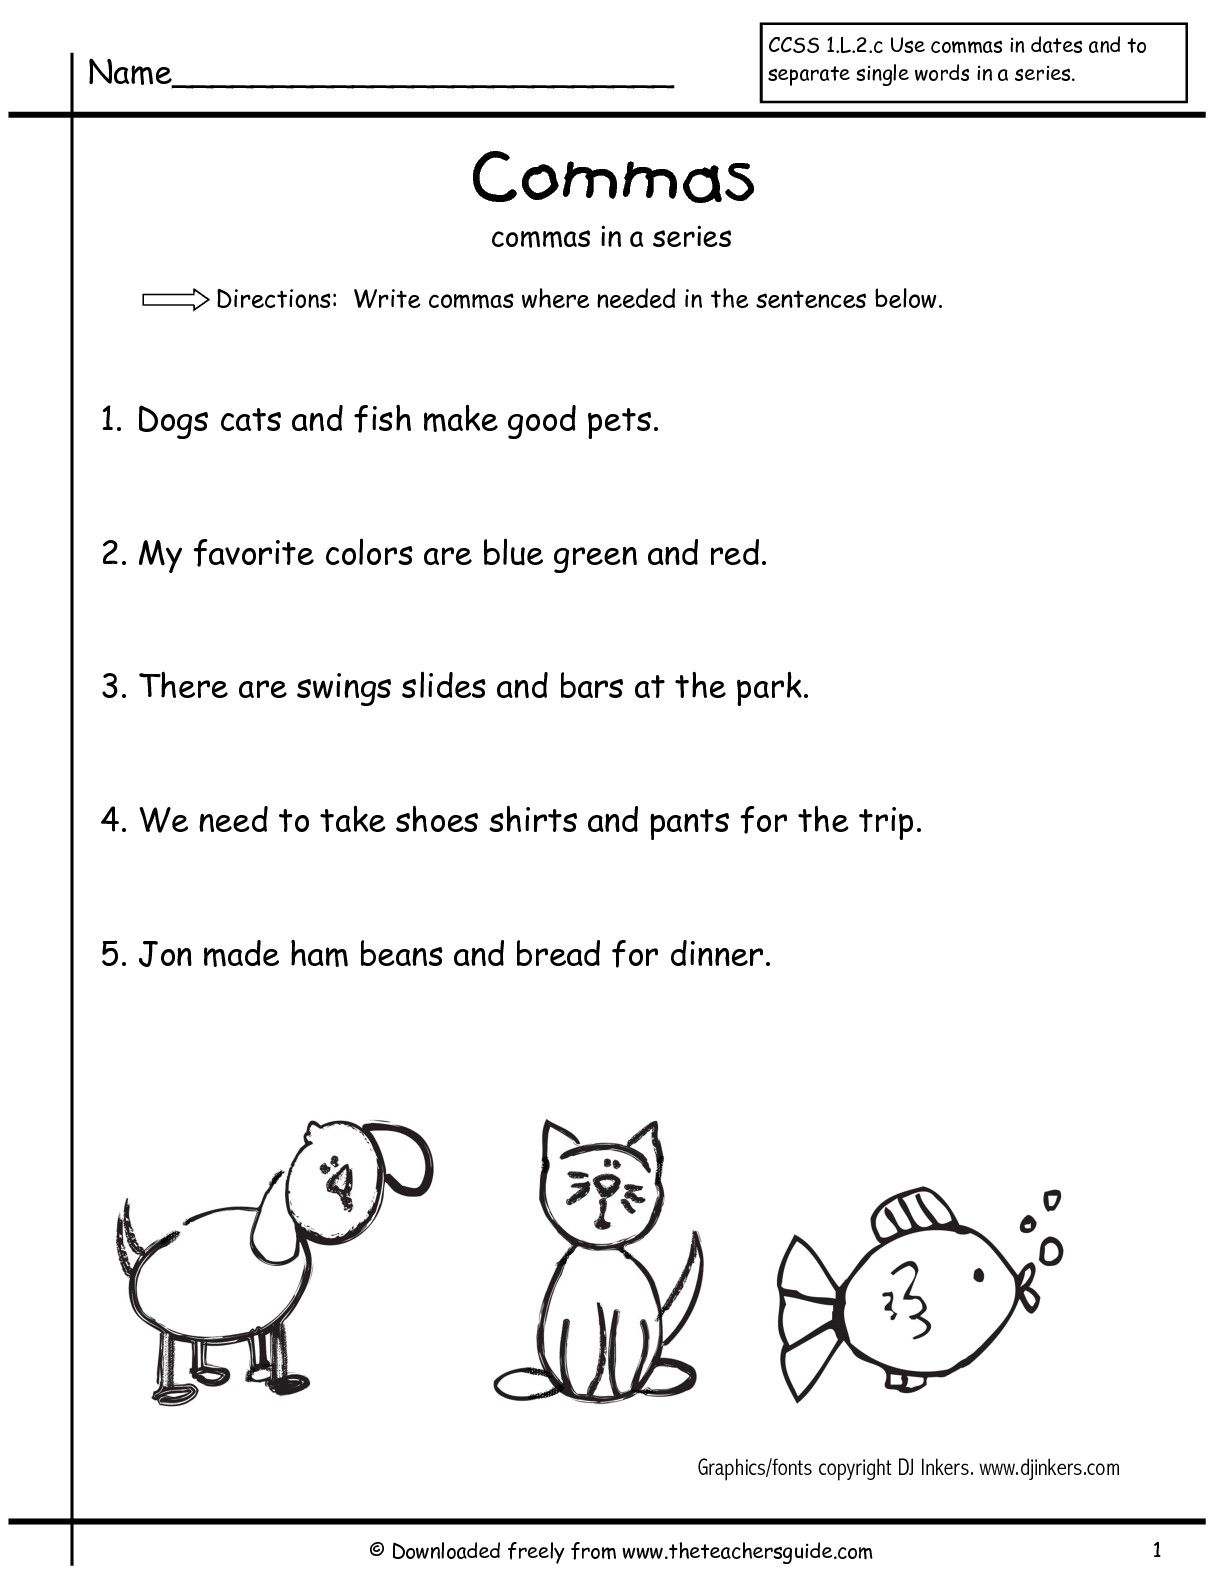 Worksheets Grammar Worksheets 1st Grade grammar worksheets commas in a series first grade free comma wkst pinterest worksheet